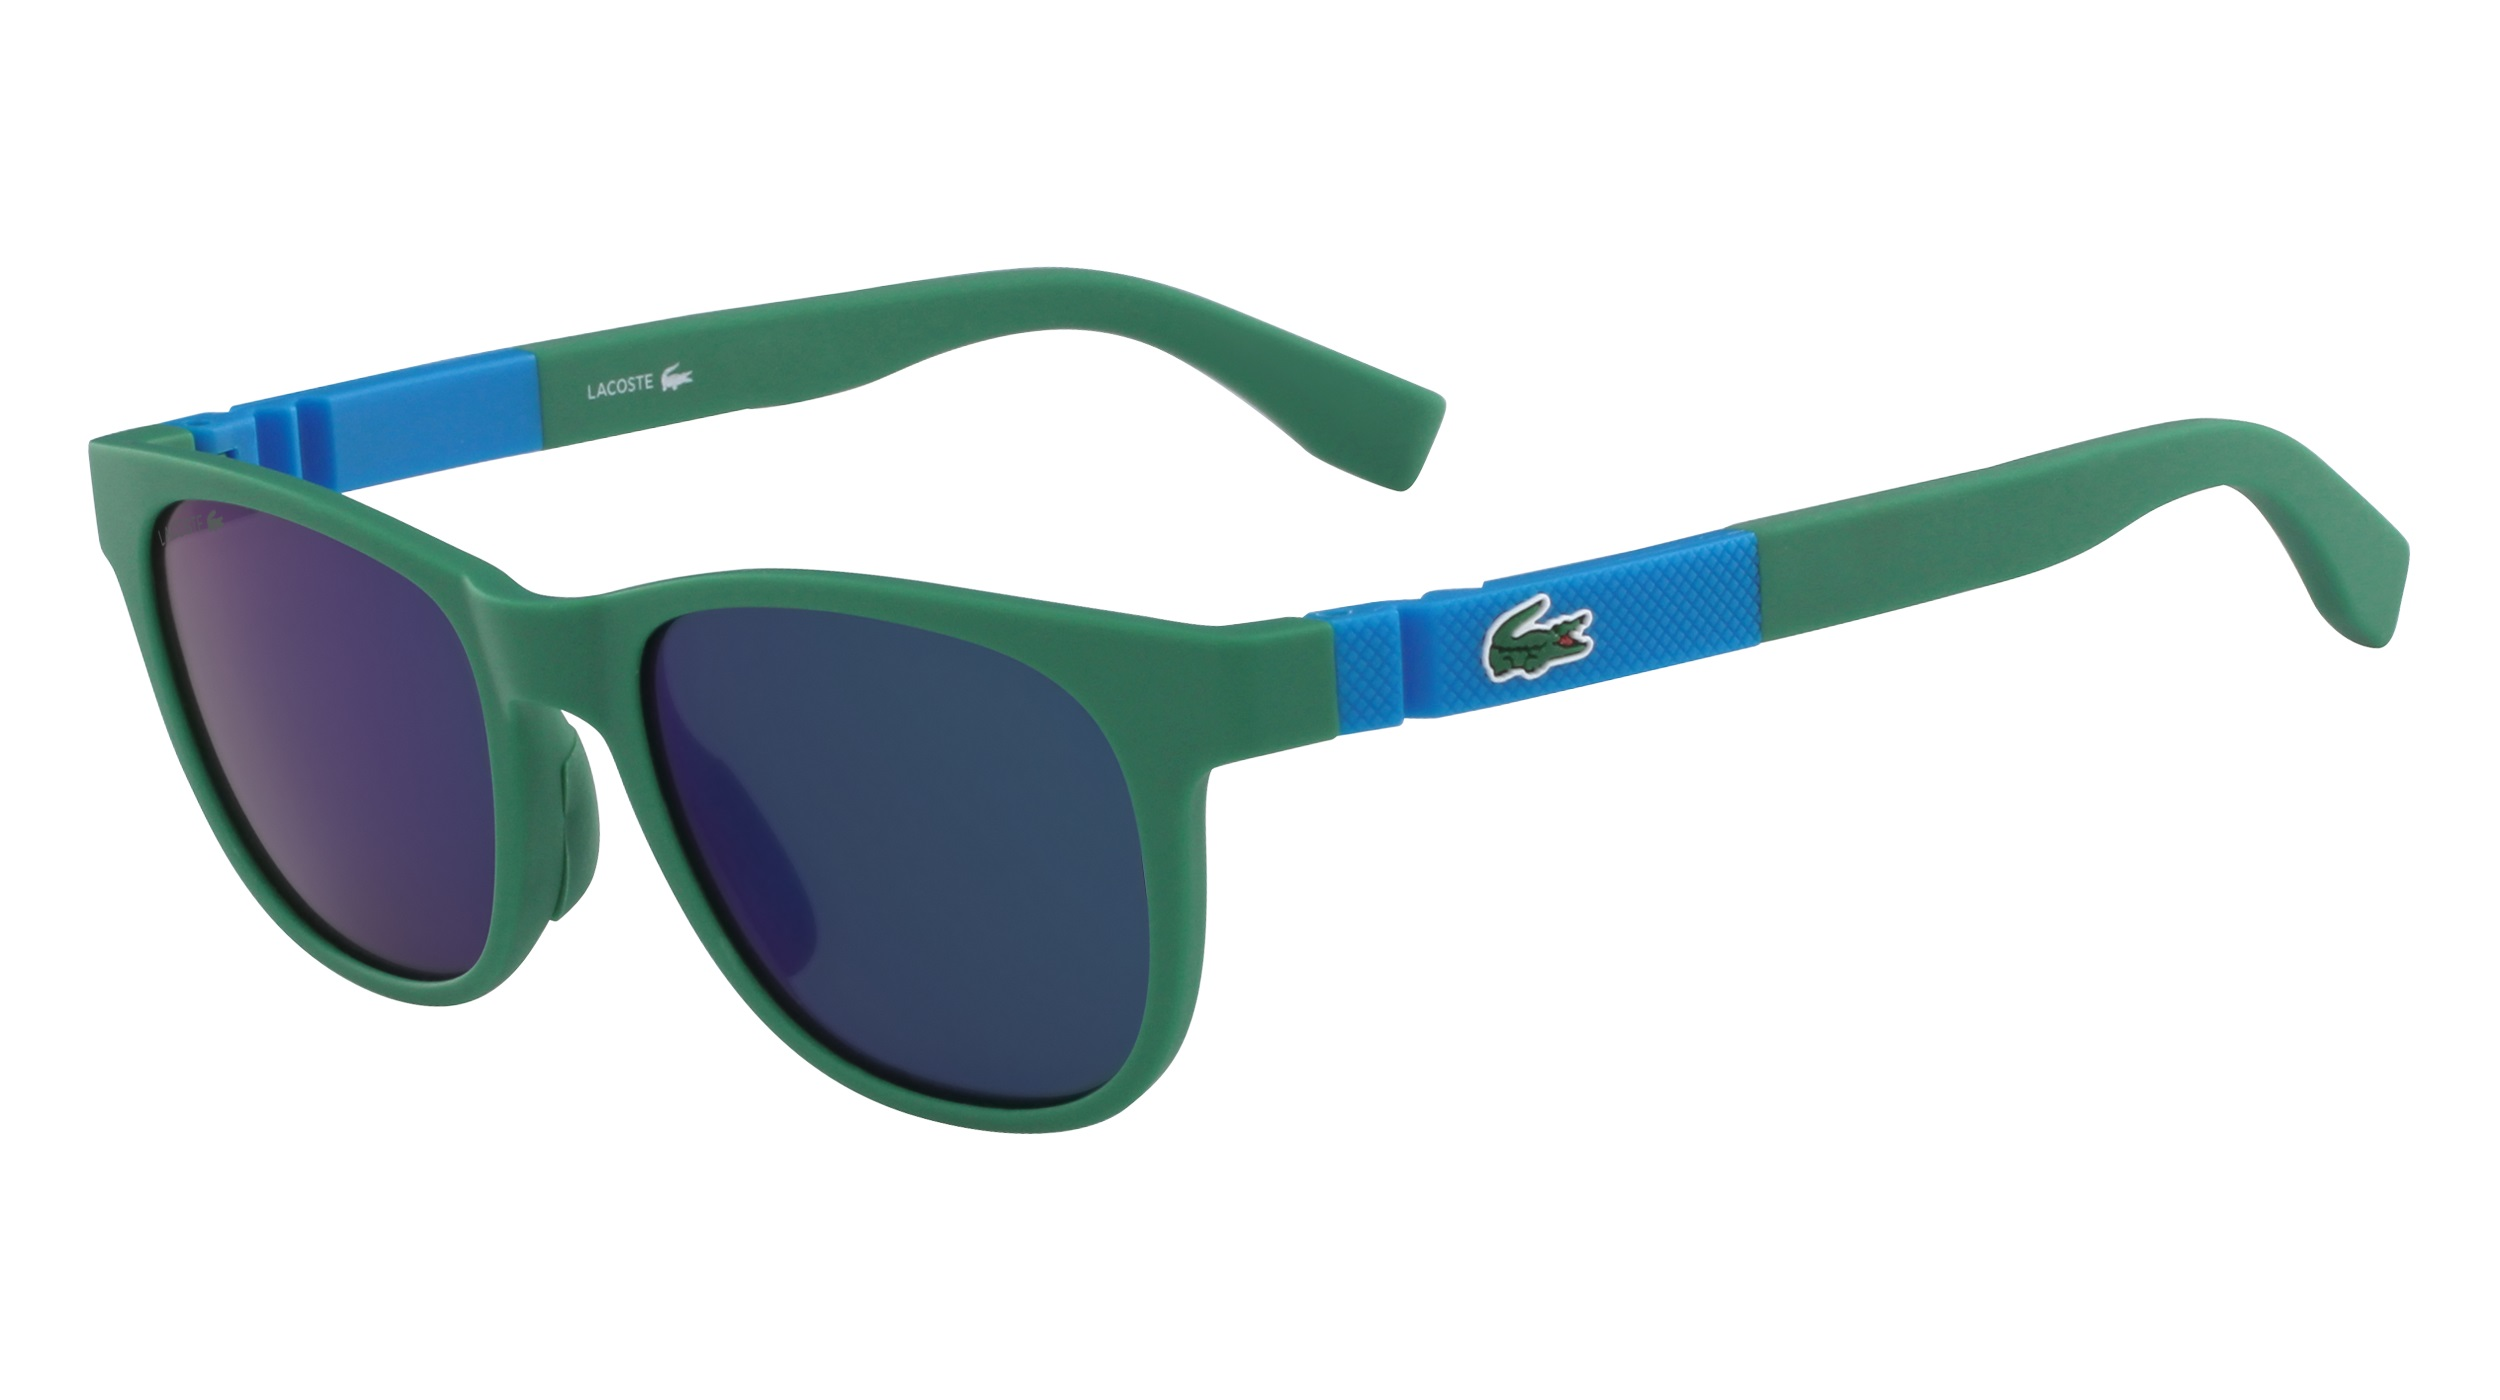 06329bc8ae9 Eyewear for Kids - Lacoste - Optiwow